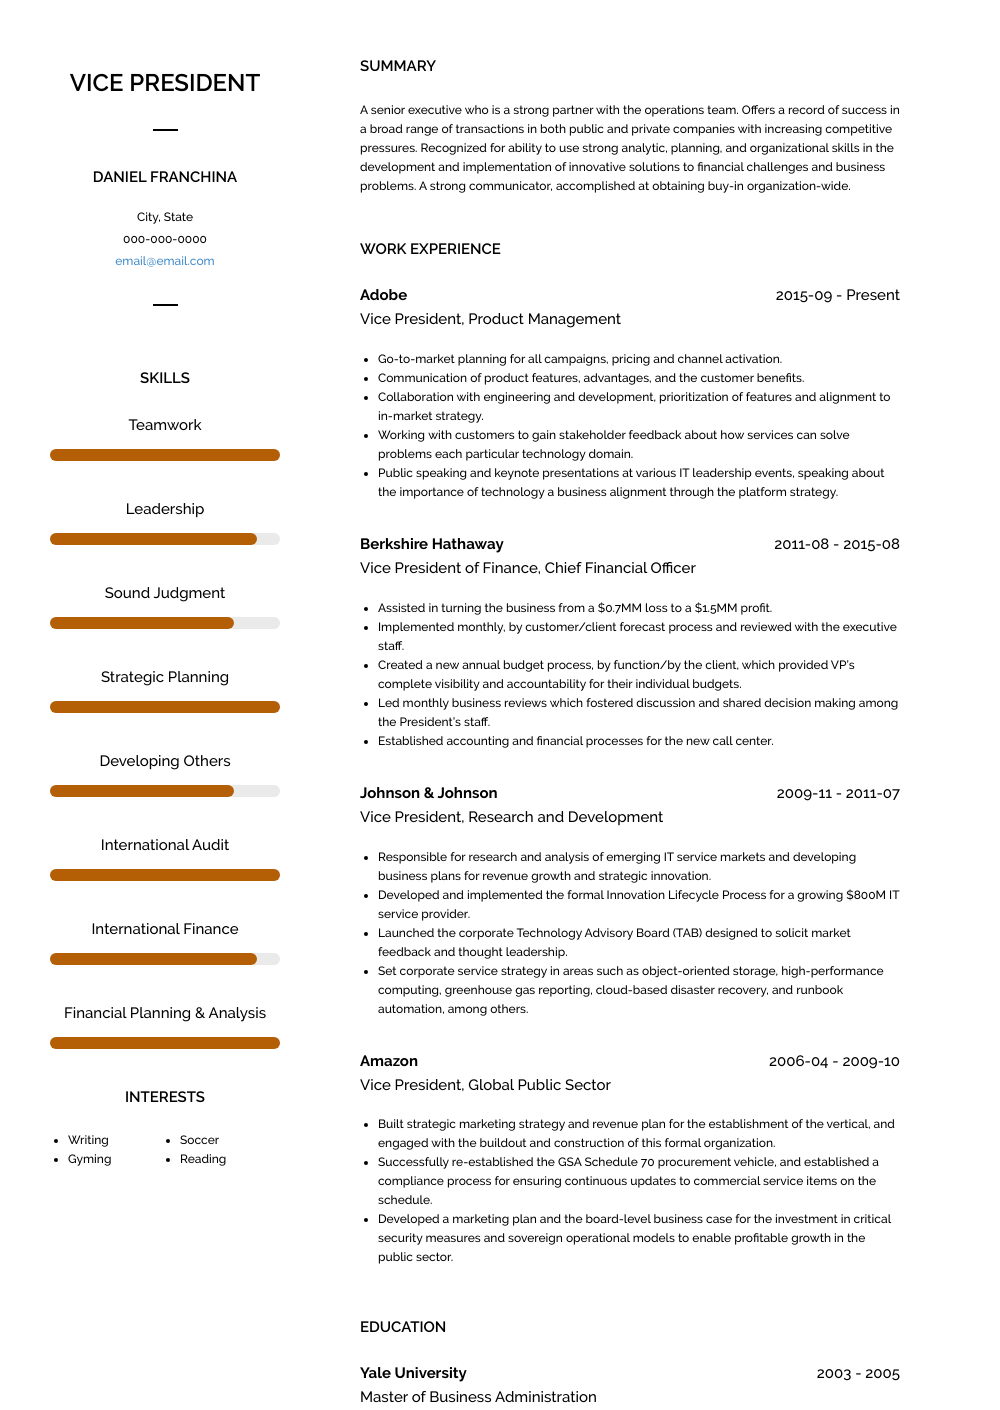 Vice President, Product Management Resume Sample and Template